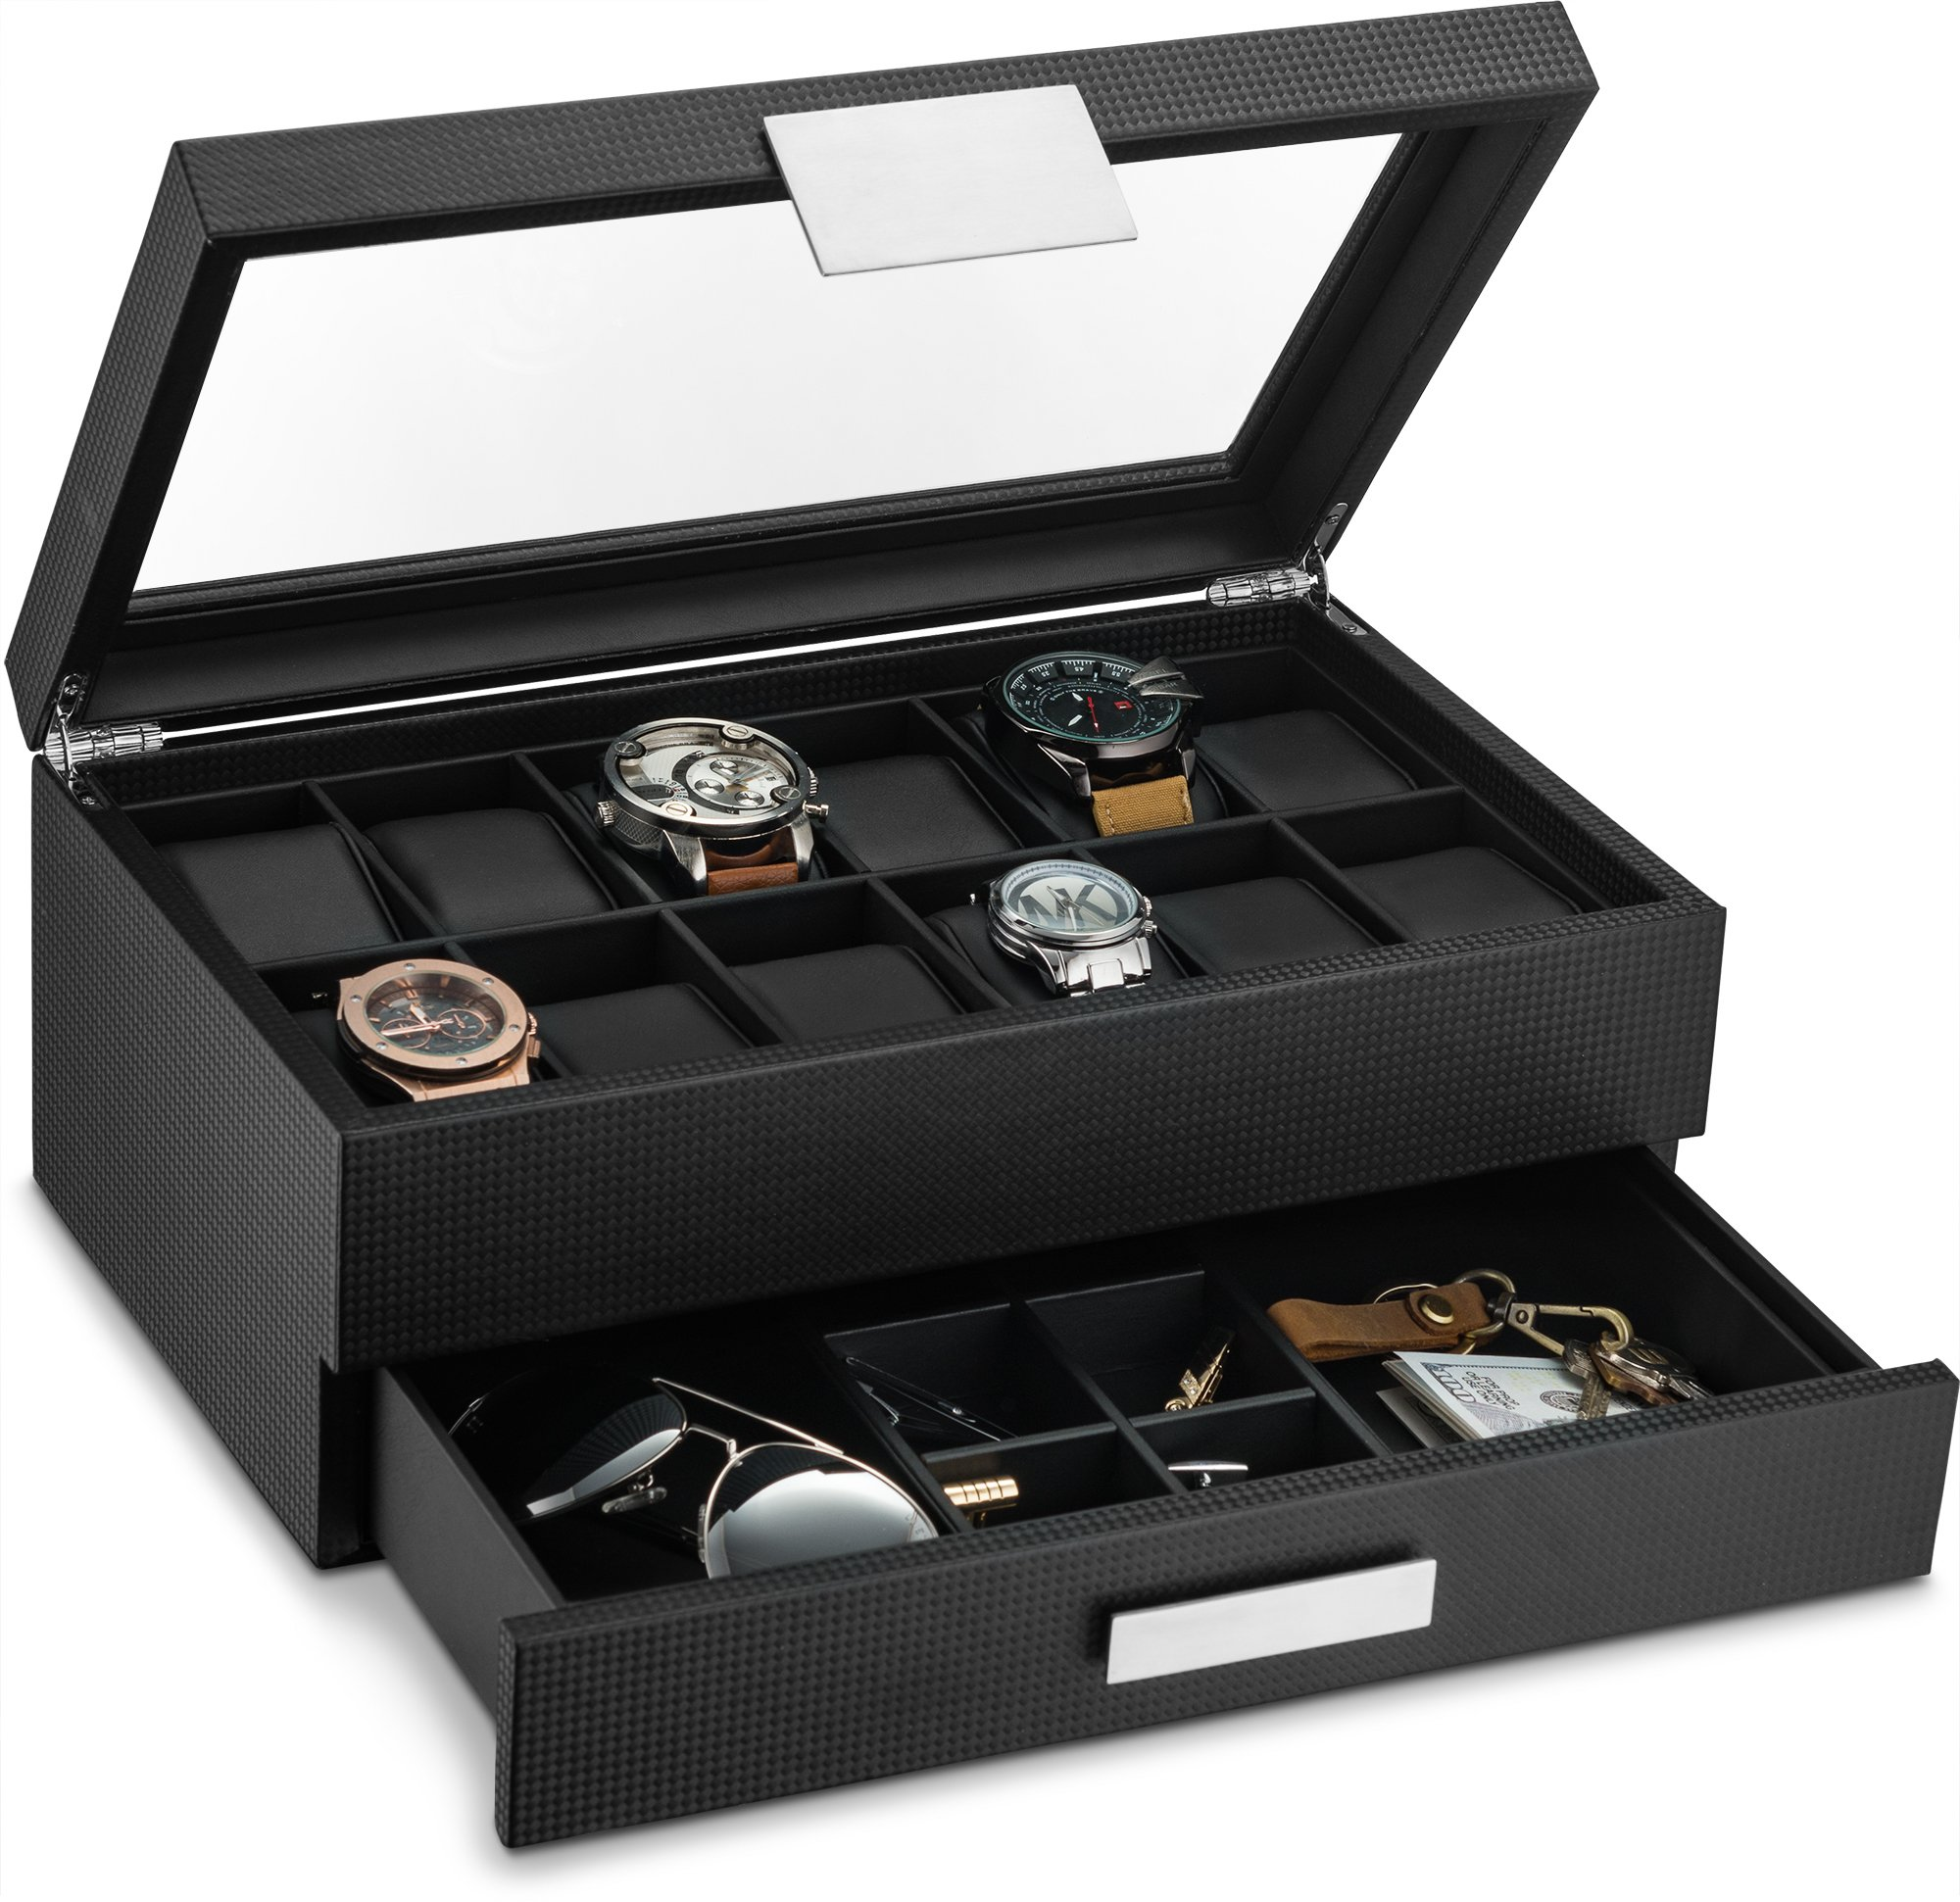 Perfect Glenor Co Watch Box with Valet Drawer for Men - 12 Slot Luxury  BR96